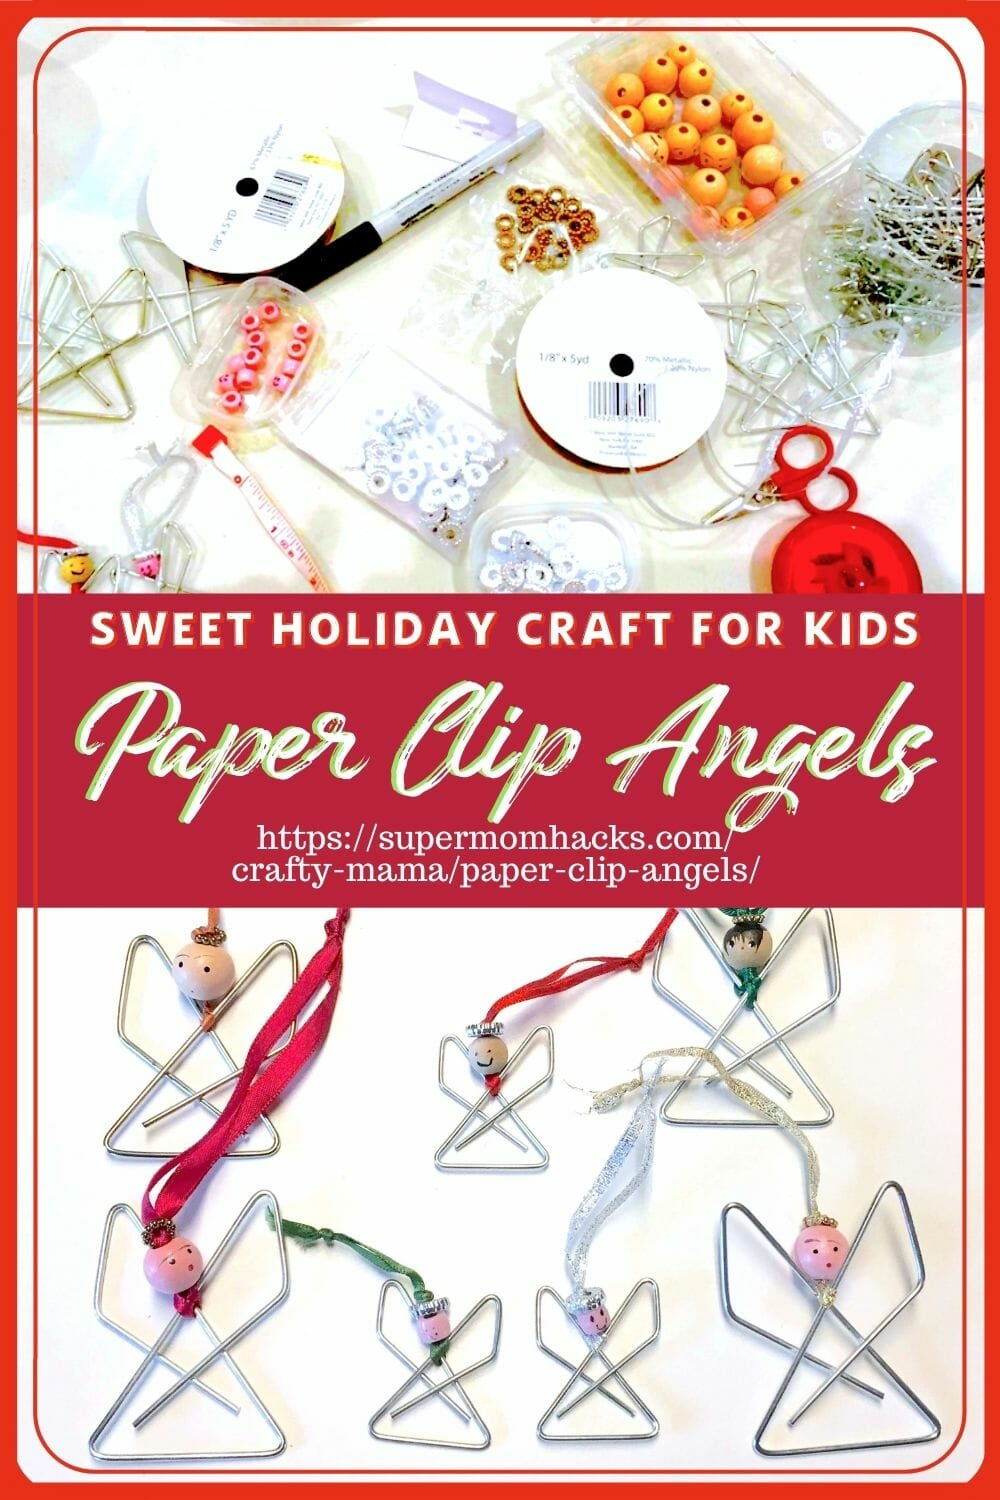 Looking for a cute, easy, kid-friendly holiday craft? These paper clip angels make great teacher gifts. Paper Clip Angels (Cute Homemade Christmas Ornament) - SuperMomHacks | paperclip angel | paperclip angel craft | paperclip angel ornament | paperclip angel tutorial | paperclip angels | homemade christmas ornaments | easy diy holiday ornaments | easy holiday ornament crafts | easy holiday ornament ideas | diy christmas ornaments | easy christmas ornament ideas | holiday teacher gift ideas